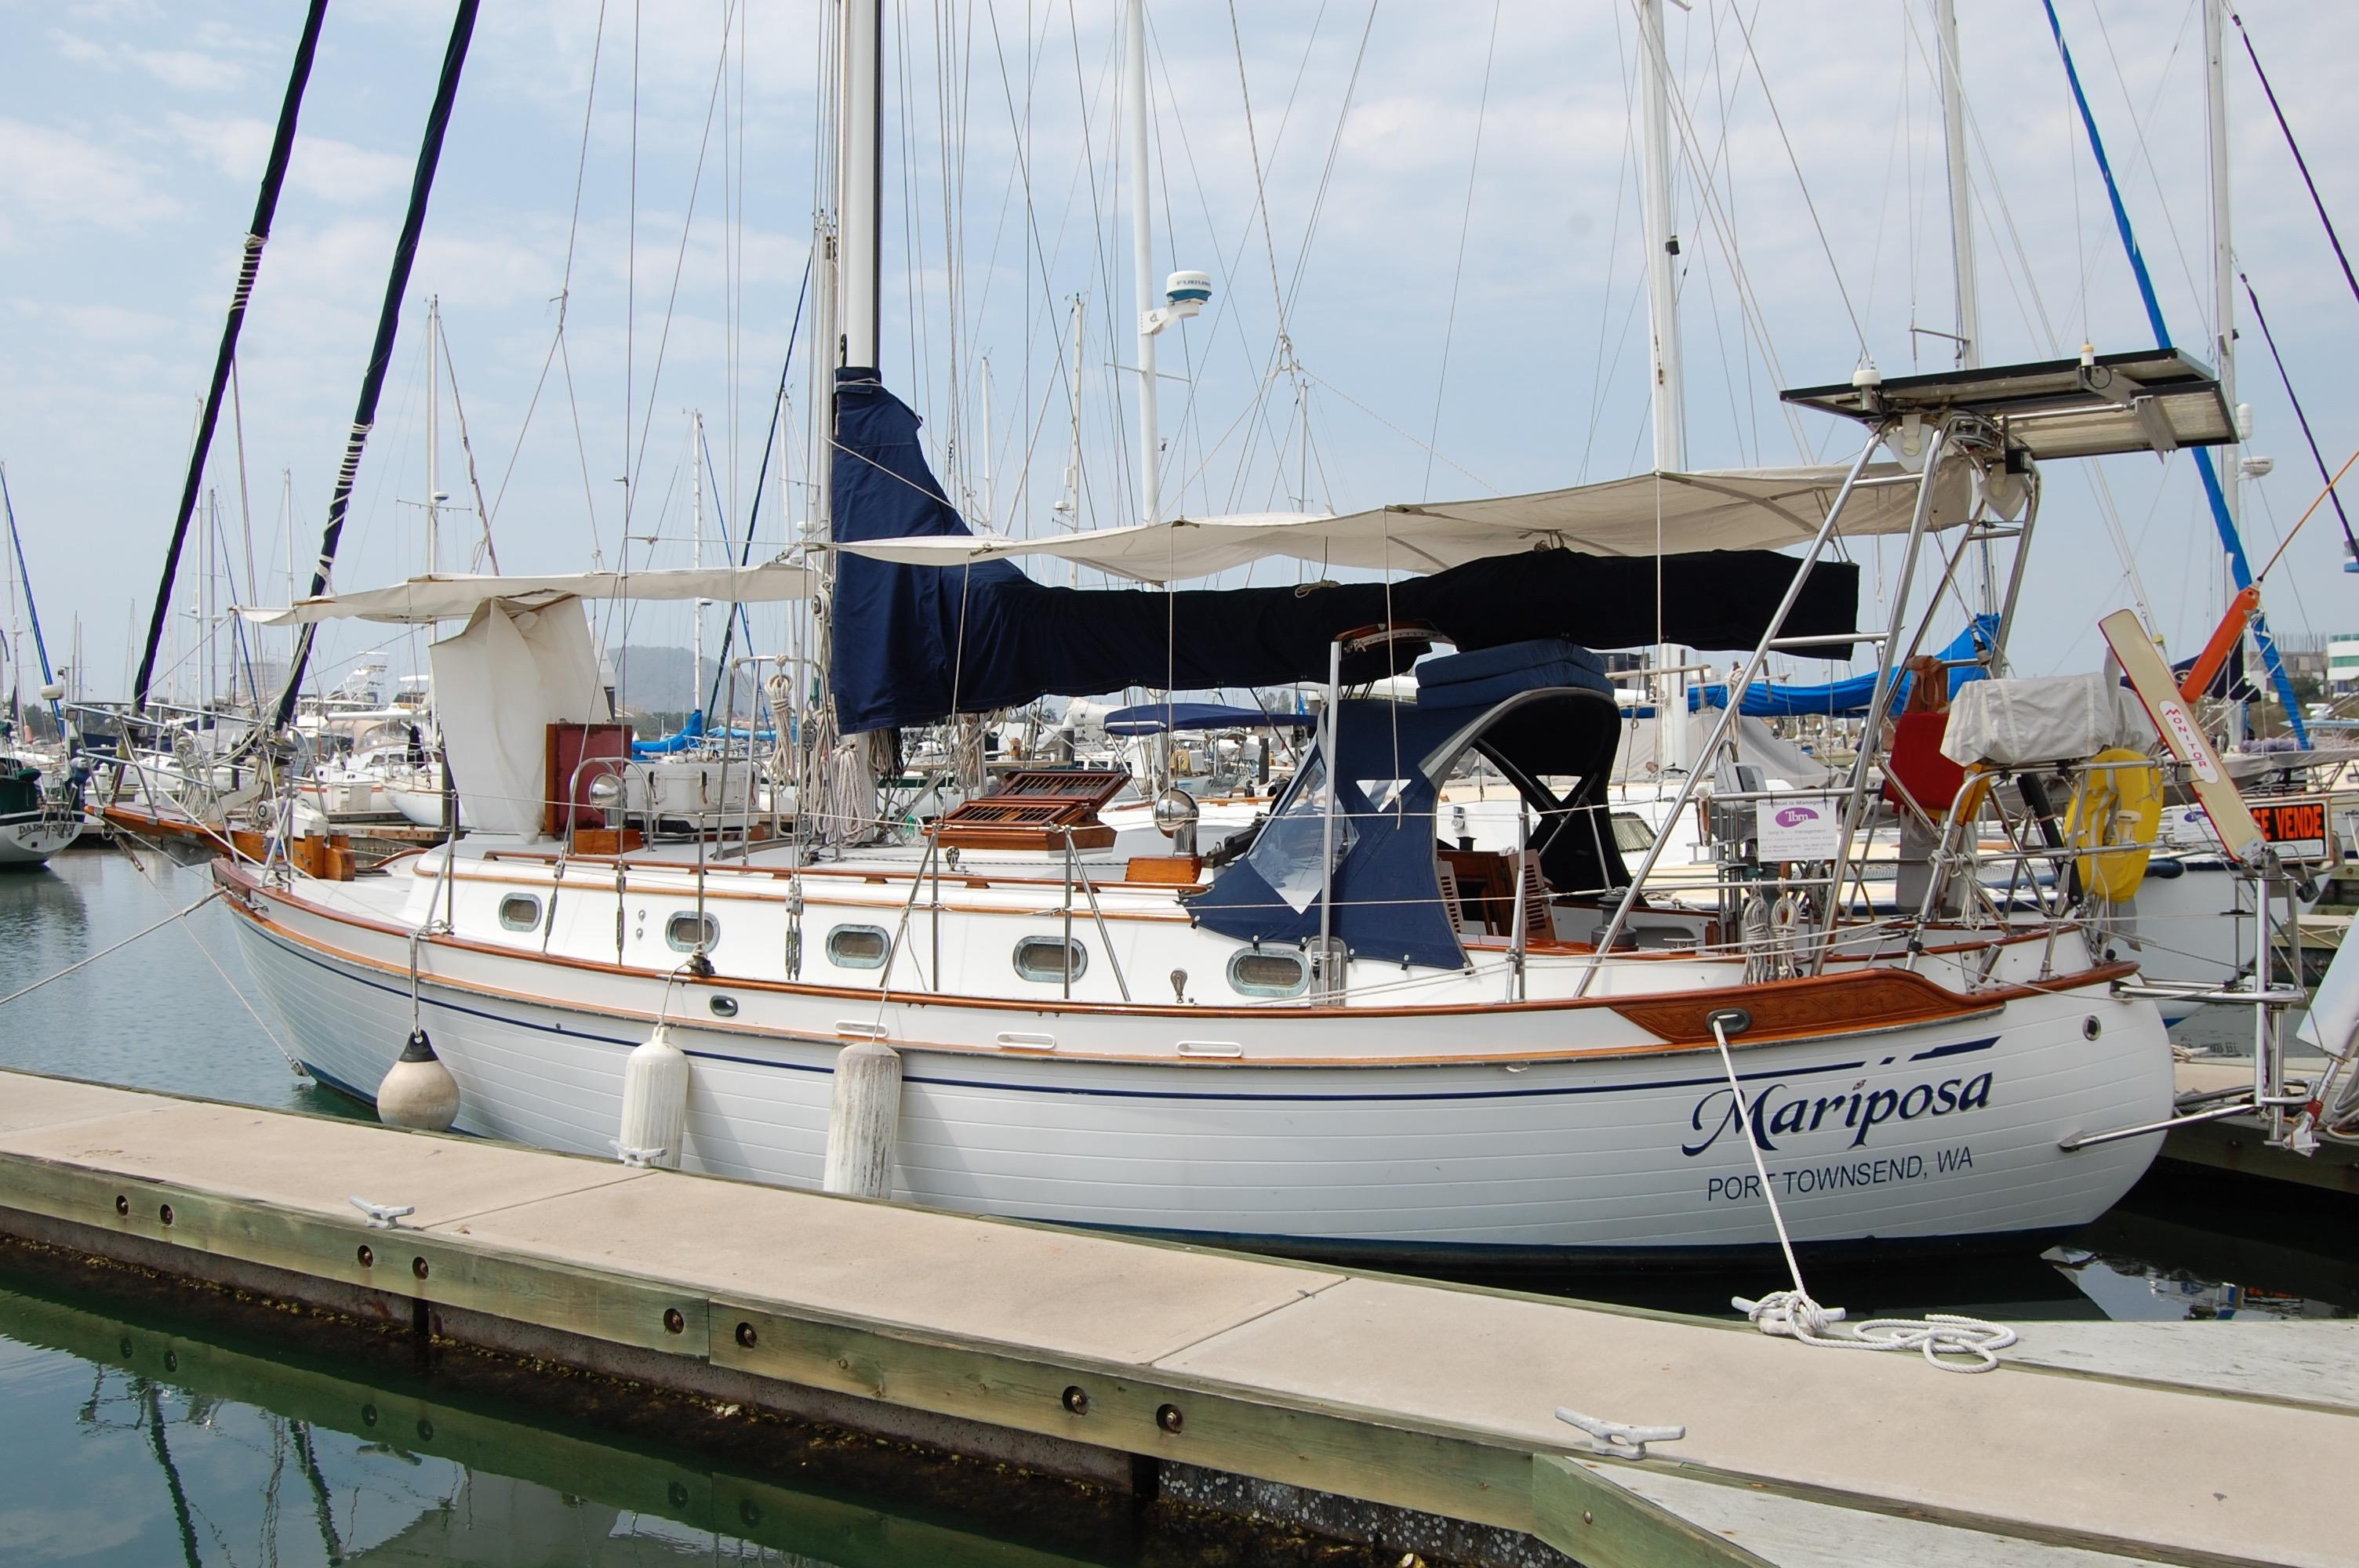 37' Tayana Cutter+Boat for sale!